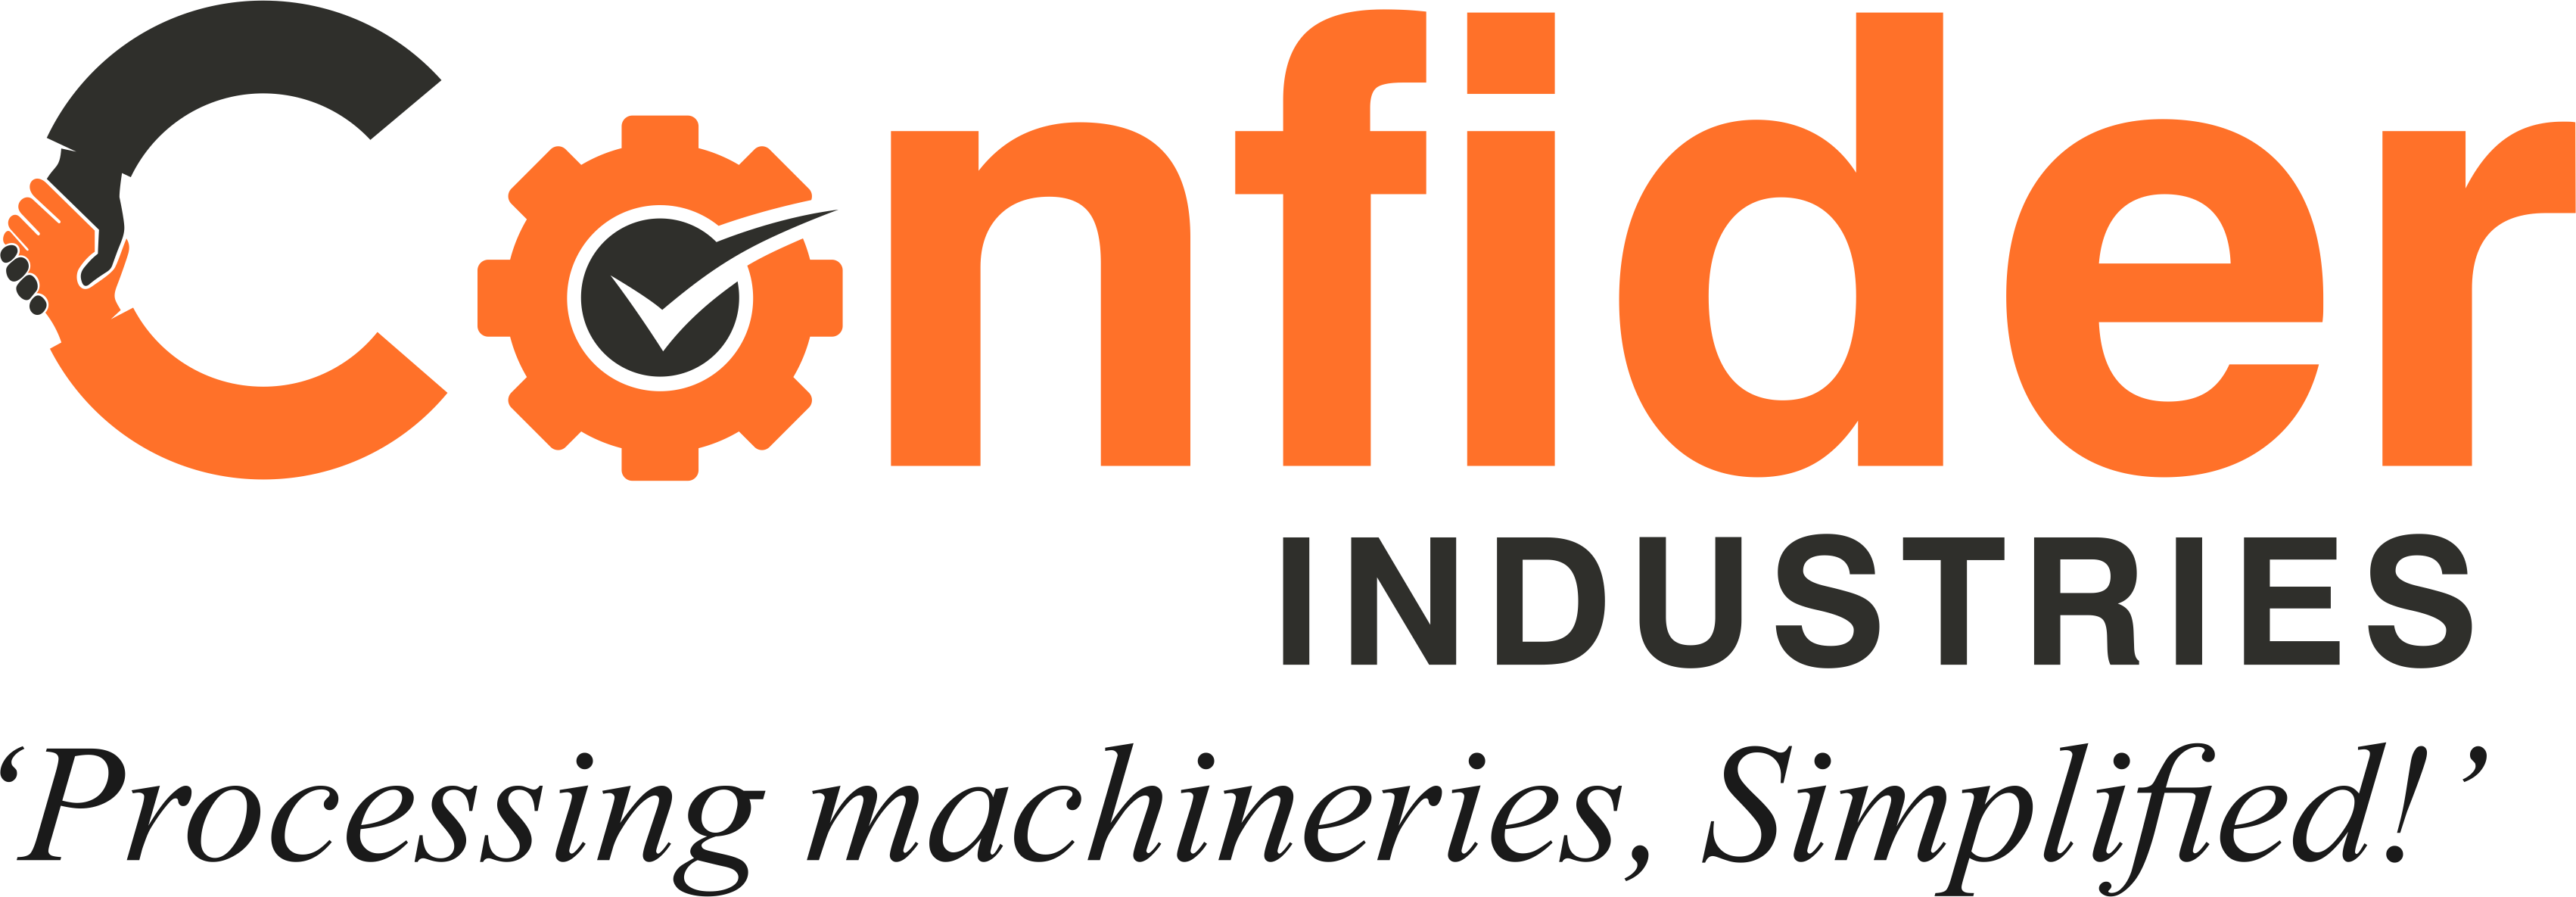 Confider Industries, Ahmedabad